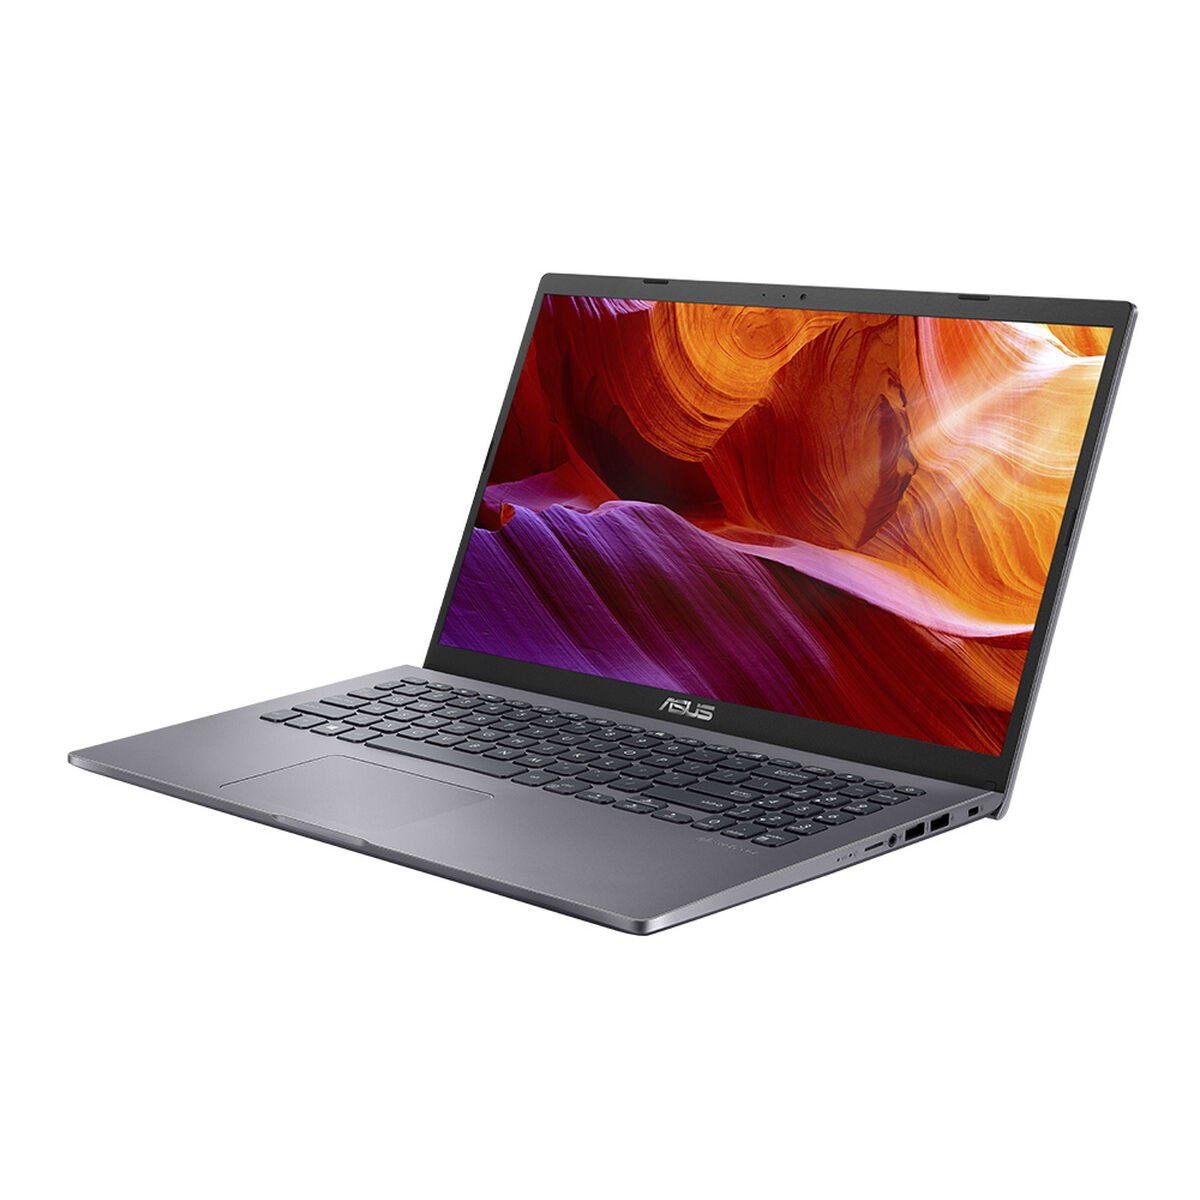 "Notebook ASUS X509JA-EJ452T Core i5 4GB 1TB 15.6"" + 16GB Optane"